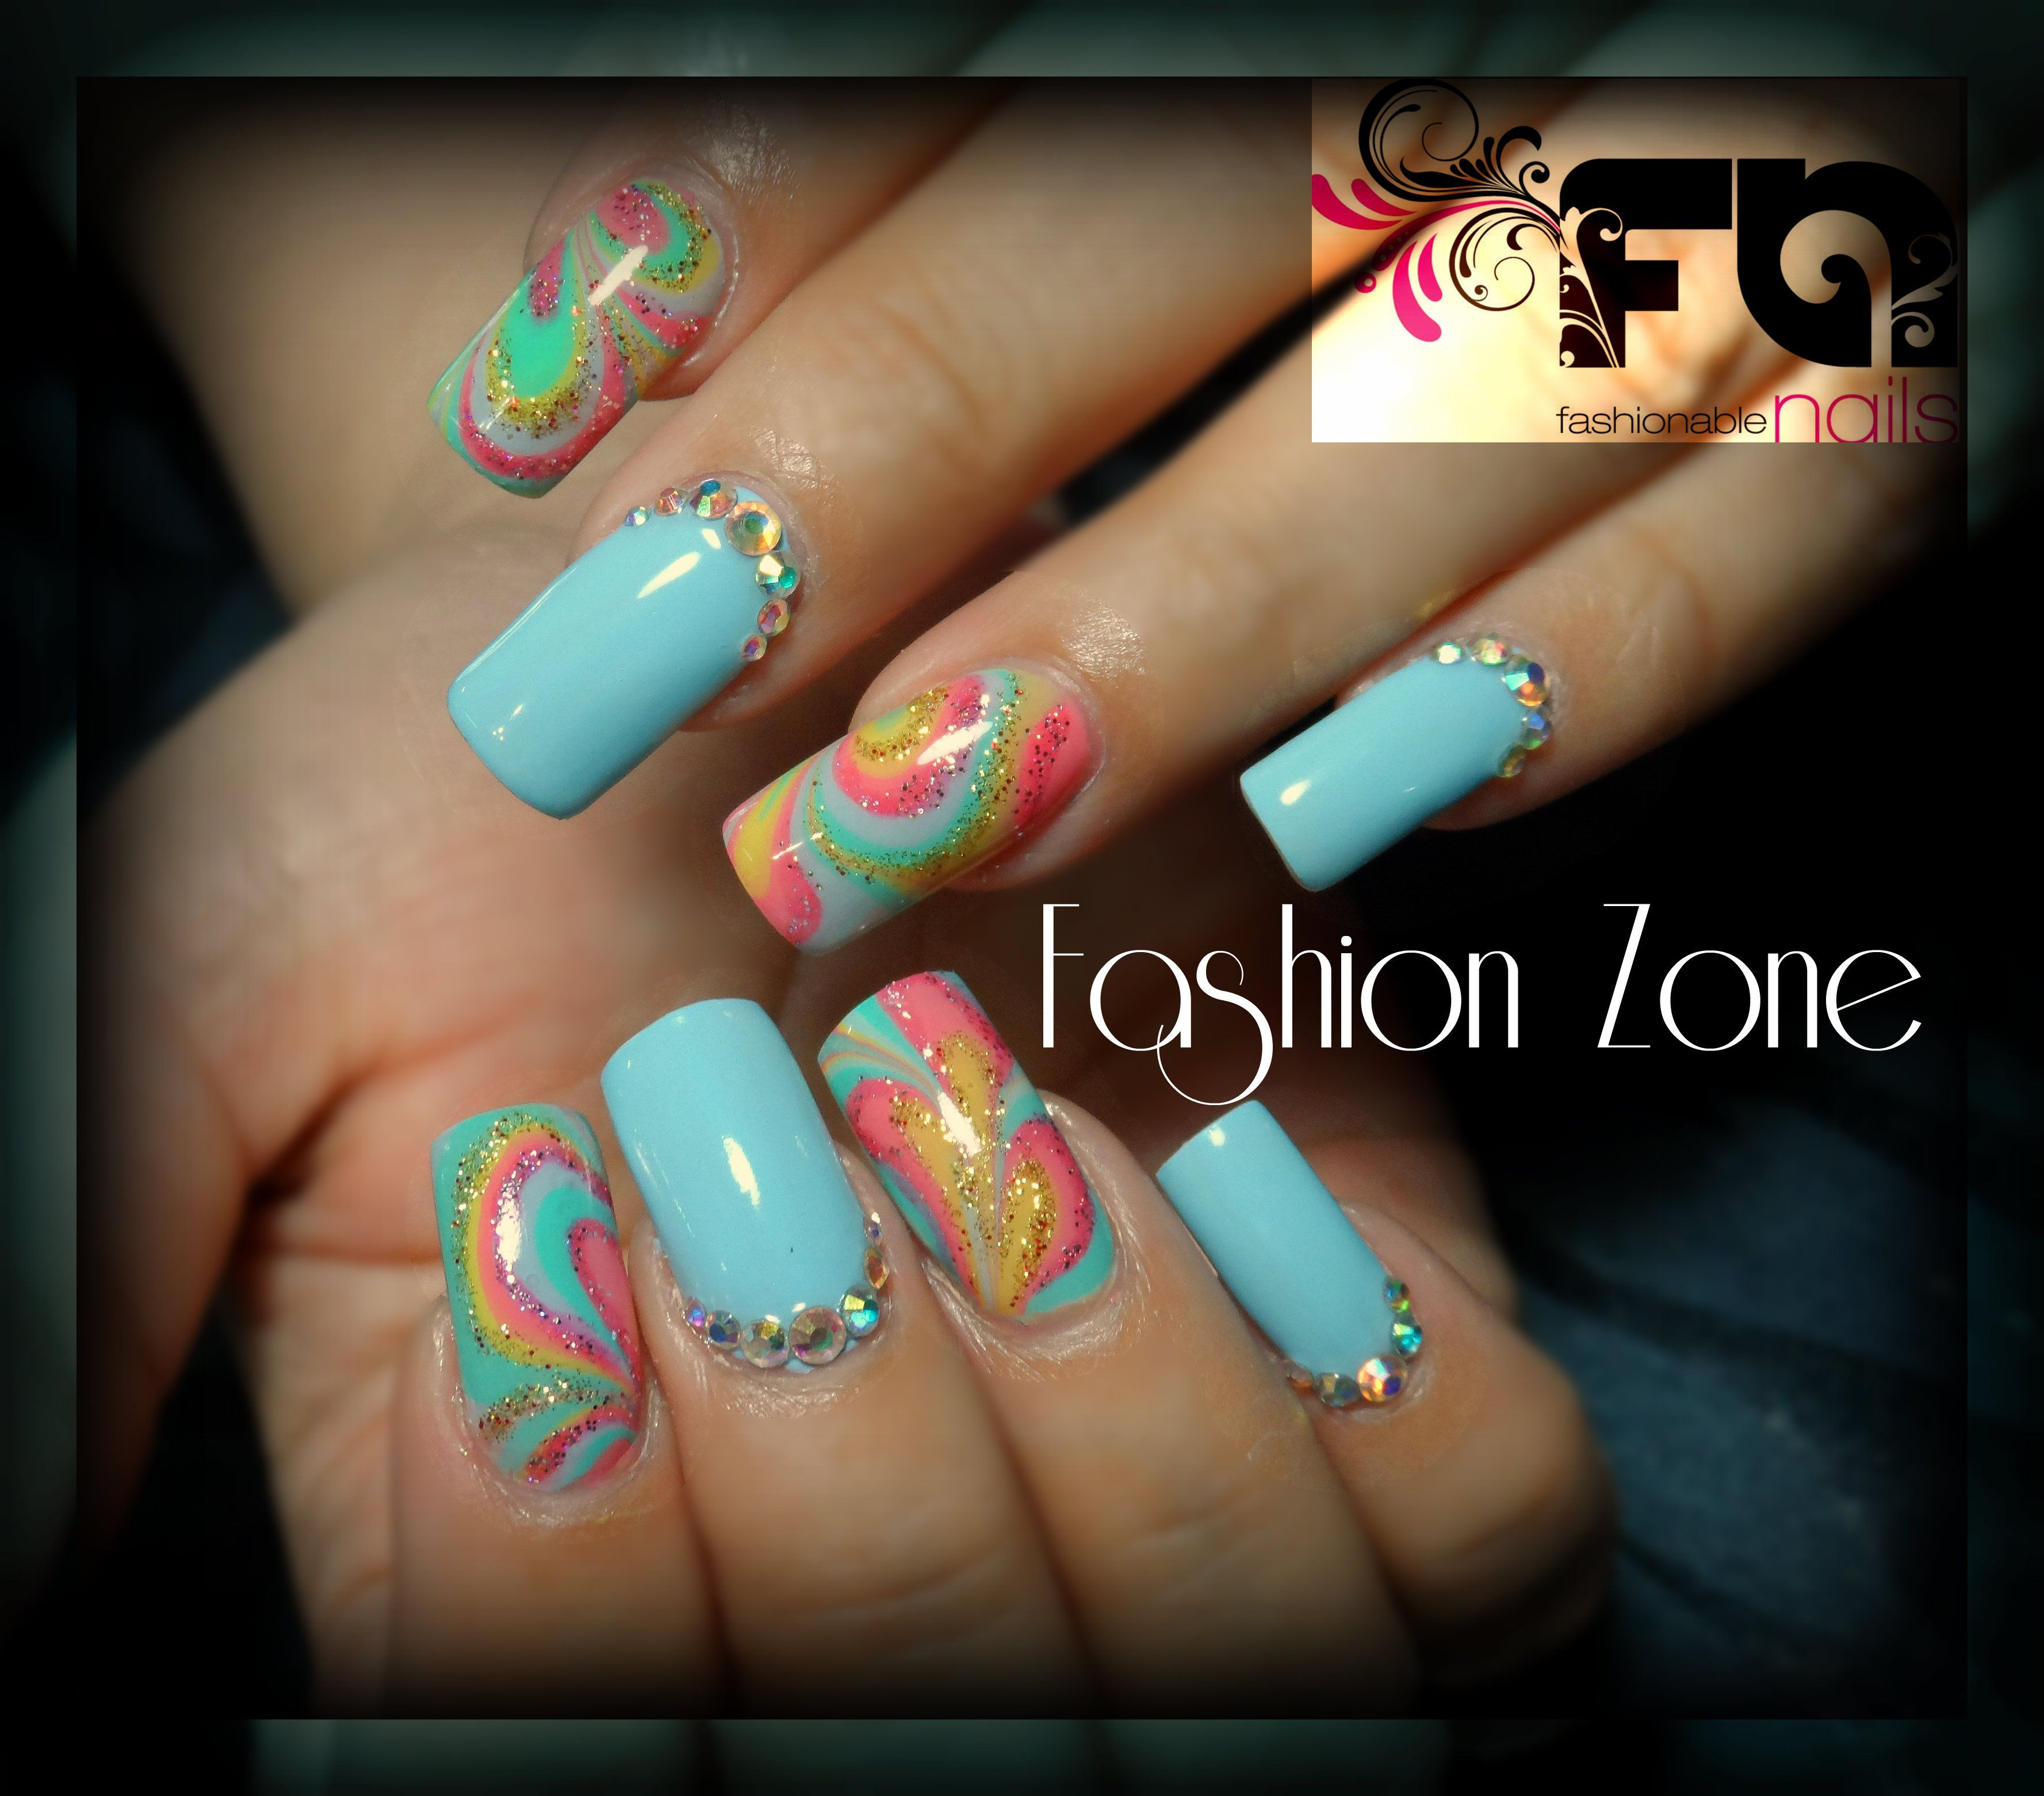 Fashion Beauty Zone: Nails. Marbolizado !!! Diseño Hecho En Fashion Zone